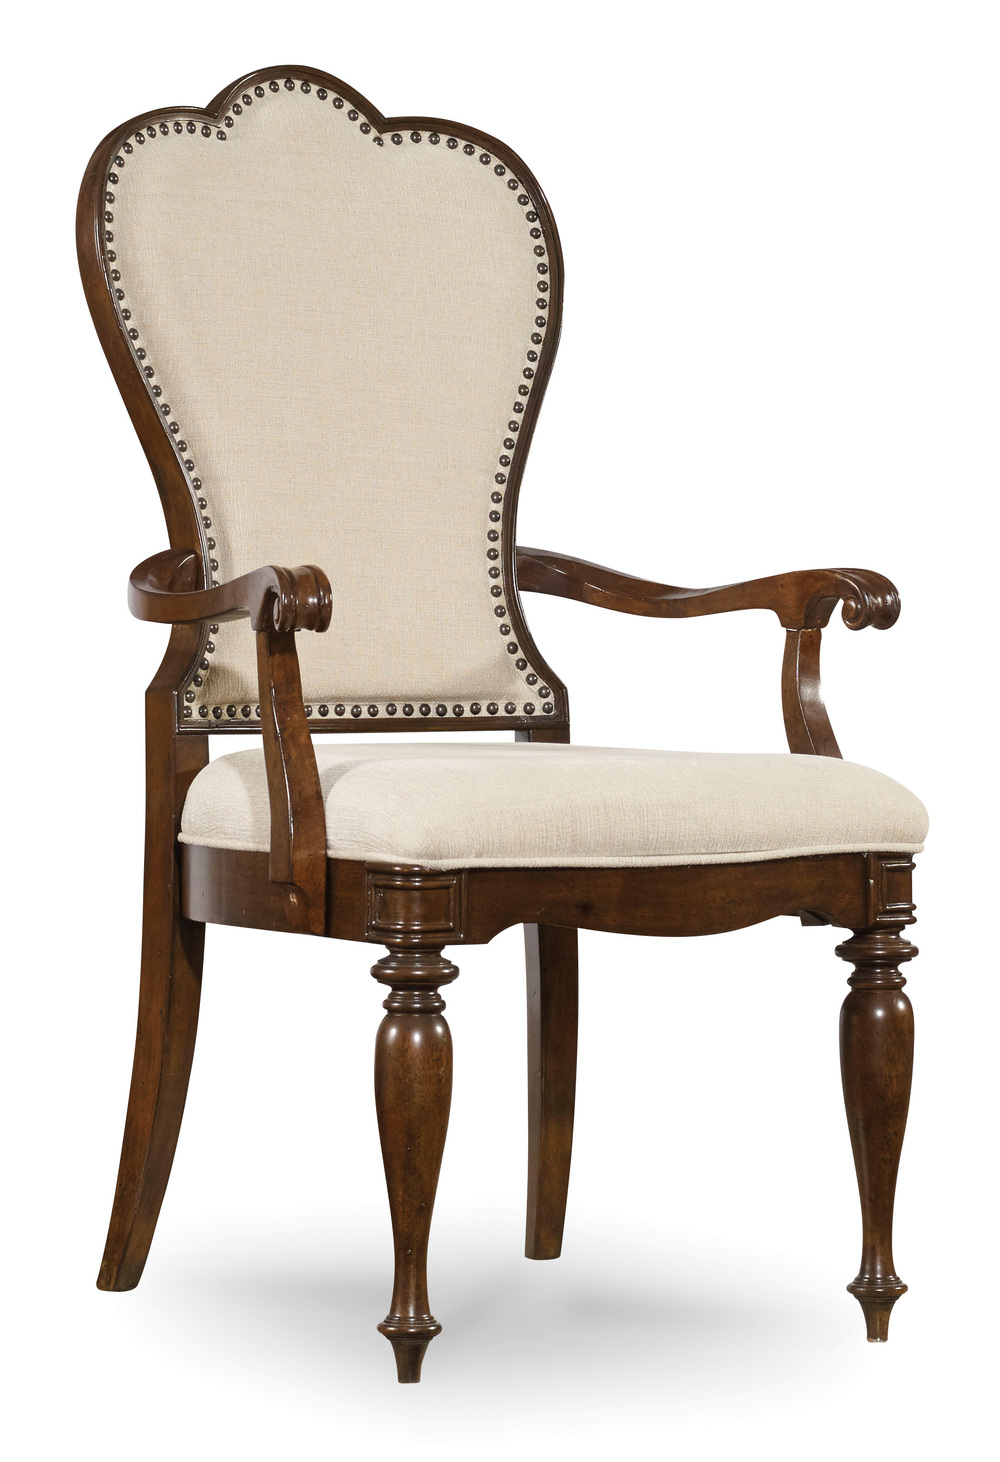 Hooker Furniture - Leesburg Upholstered Arm Chair